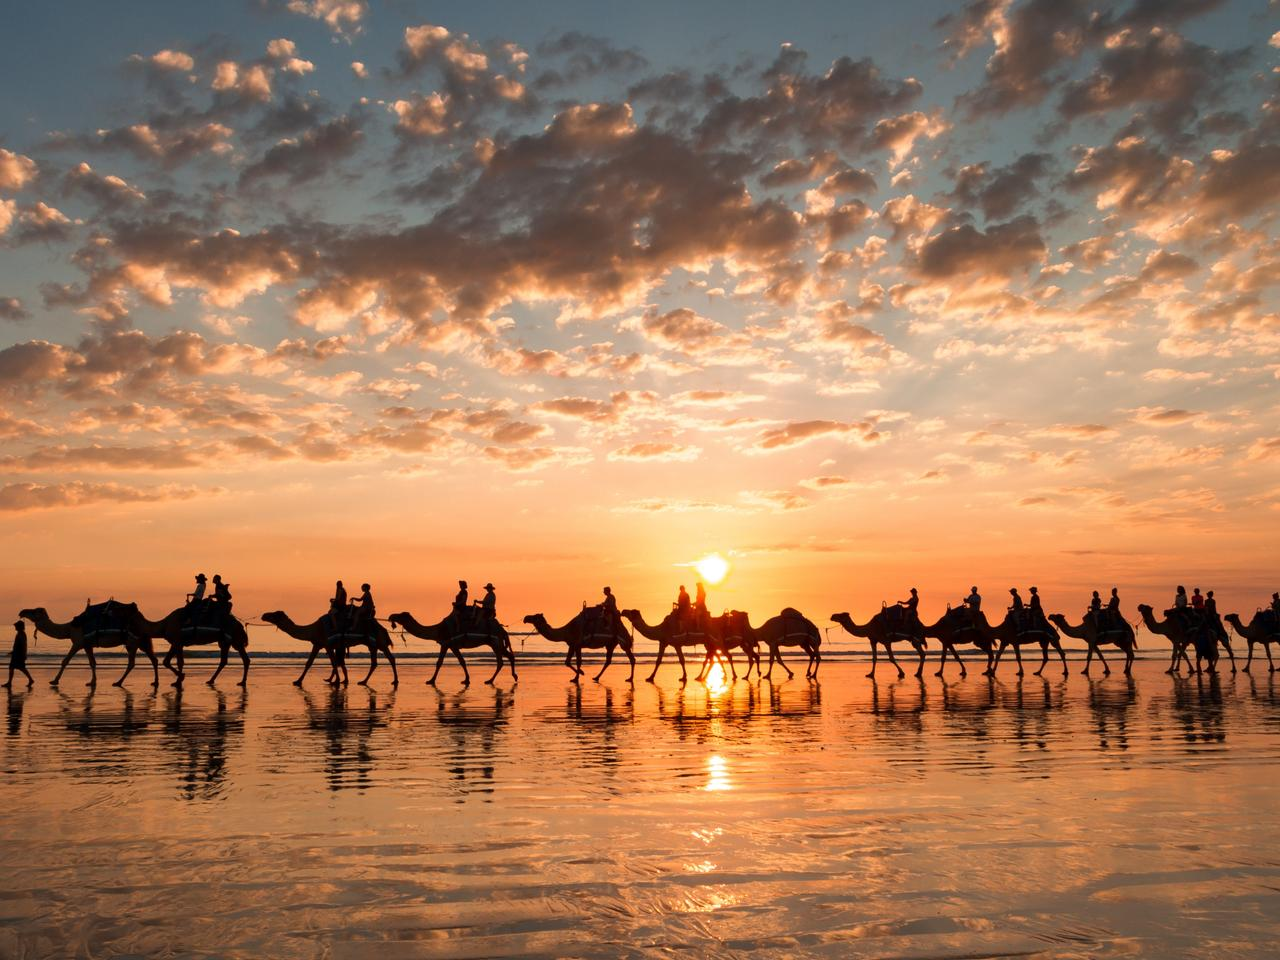 Sunset silhouette of the camels on Cable Beach, Broome, Western Australia.